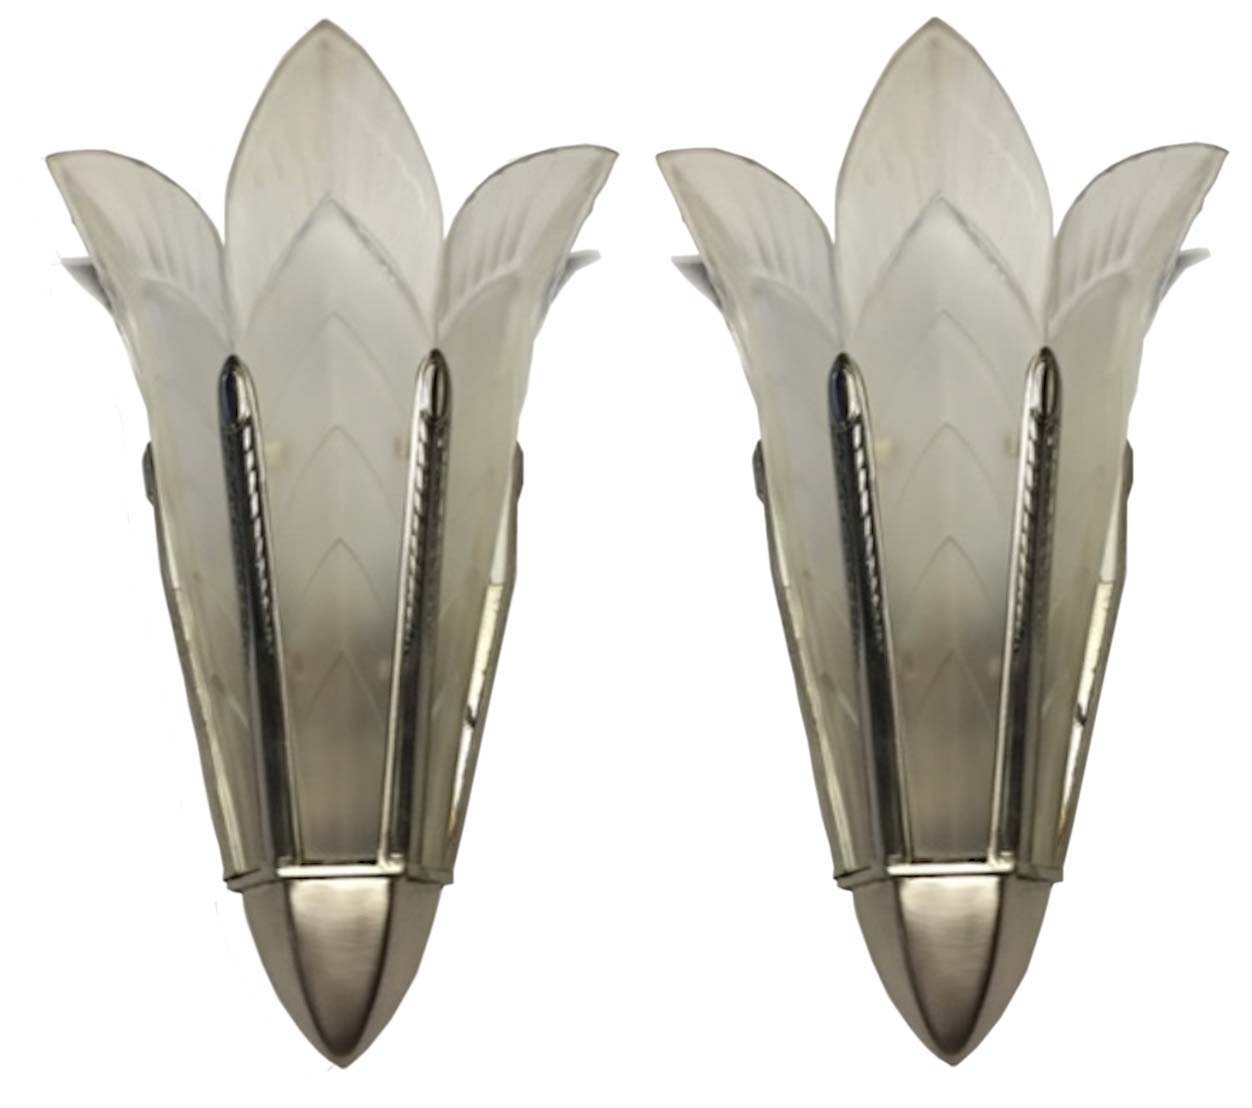 A Pair Of Signed Sabino French Art Deco Wall Sconces | Modernism In 2017 Art Deco Wall Sconces (View 1 of 20)